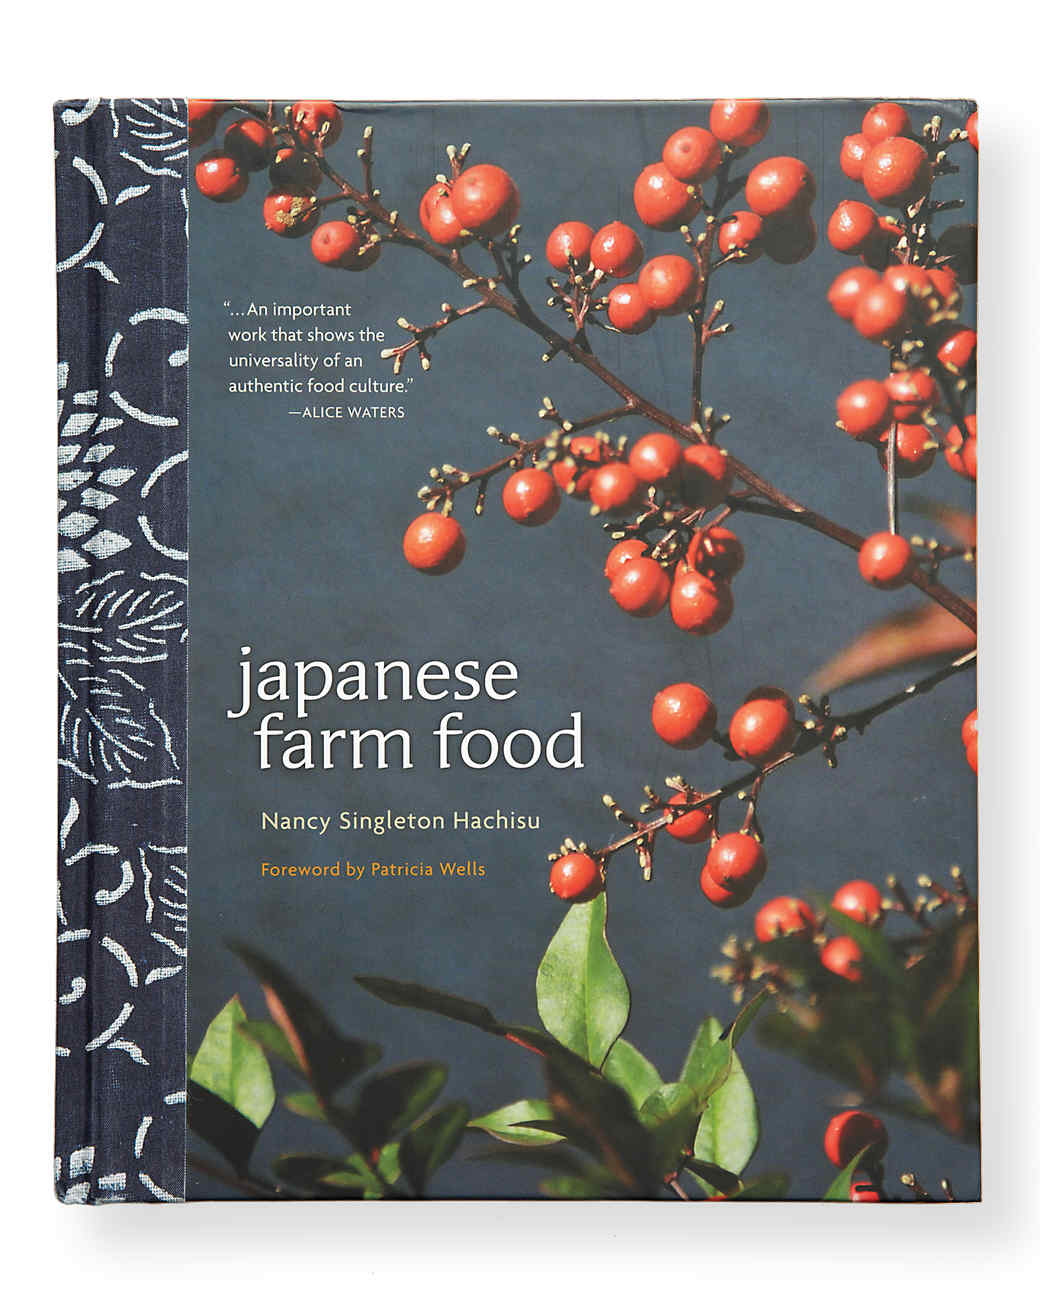 japanese-farm-food-010-mld109433.jpg